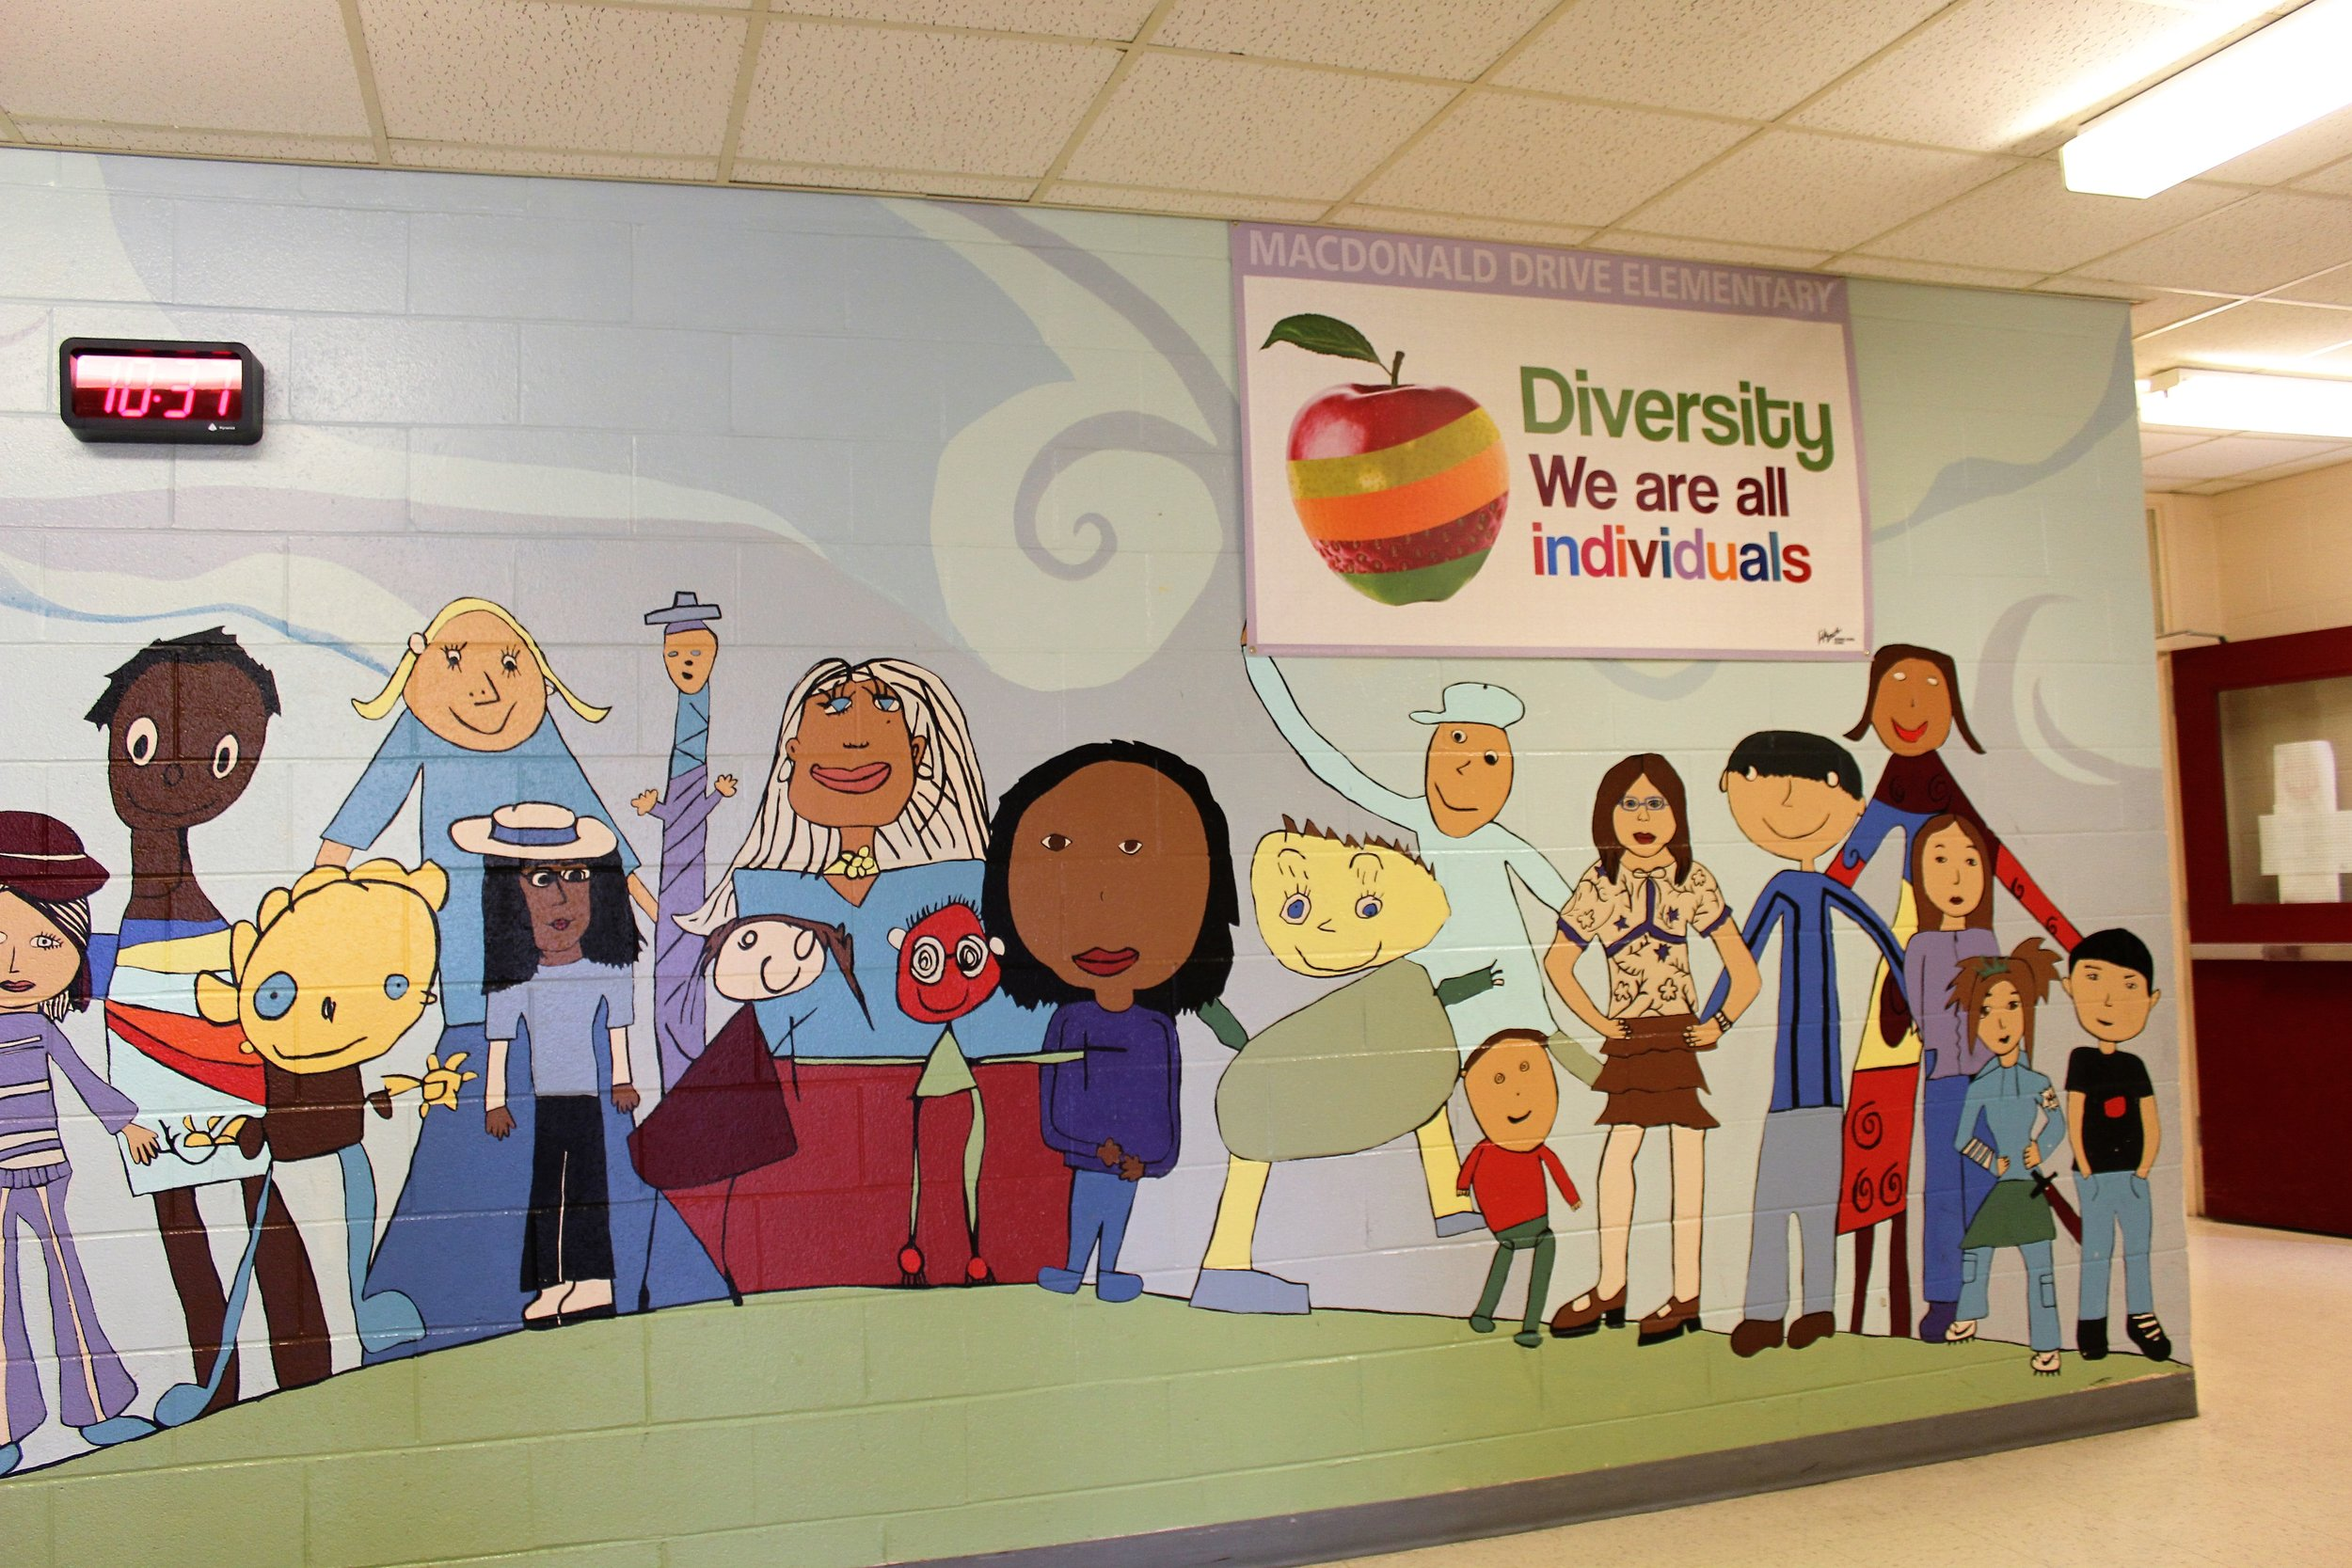 Upon entering our school, all teachers, students, parents, and visitors are immersed in a multicultural atmosphere. The colourful mural of children (painted by previous students) on the wall, along with the poster above it, communicate our appreciation of the diverse cultures in our student population and the world, in general. Discussion generated about the importance and meaning of the words and images was very rich, enlightening, and for many, reaffirming of their individual place within the whole of the school-we all belong. Now every time we walk by, children not only look but realize the meaning and importance of what they are seeing.  This activity connects to the foundation of global citizenship as the children are able to see themselves in the images of the mural. They recognize the diversity amongst themselves and were able to connect the variety of student cultures in our one school to the different colours and textures of the peels on the one apple. They also made links to the world, in general. They understand that all of the children are interconnected within our school just like our world is made up of all kinds of cultures and people, just like us. We are all citizens of the school and world, and our diversity makes us special.